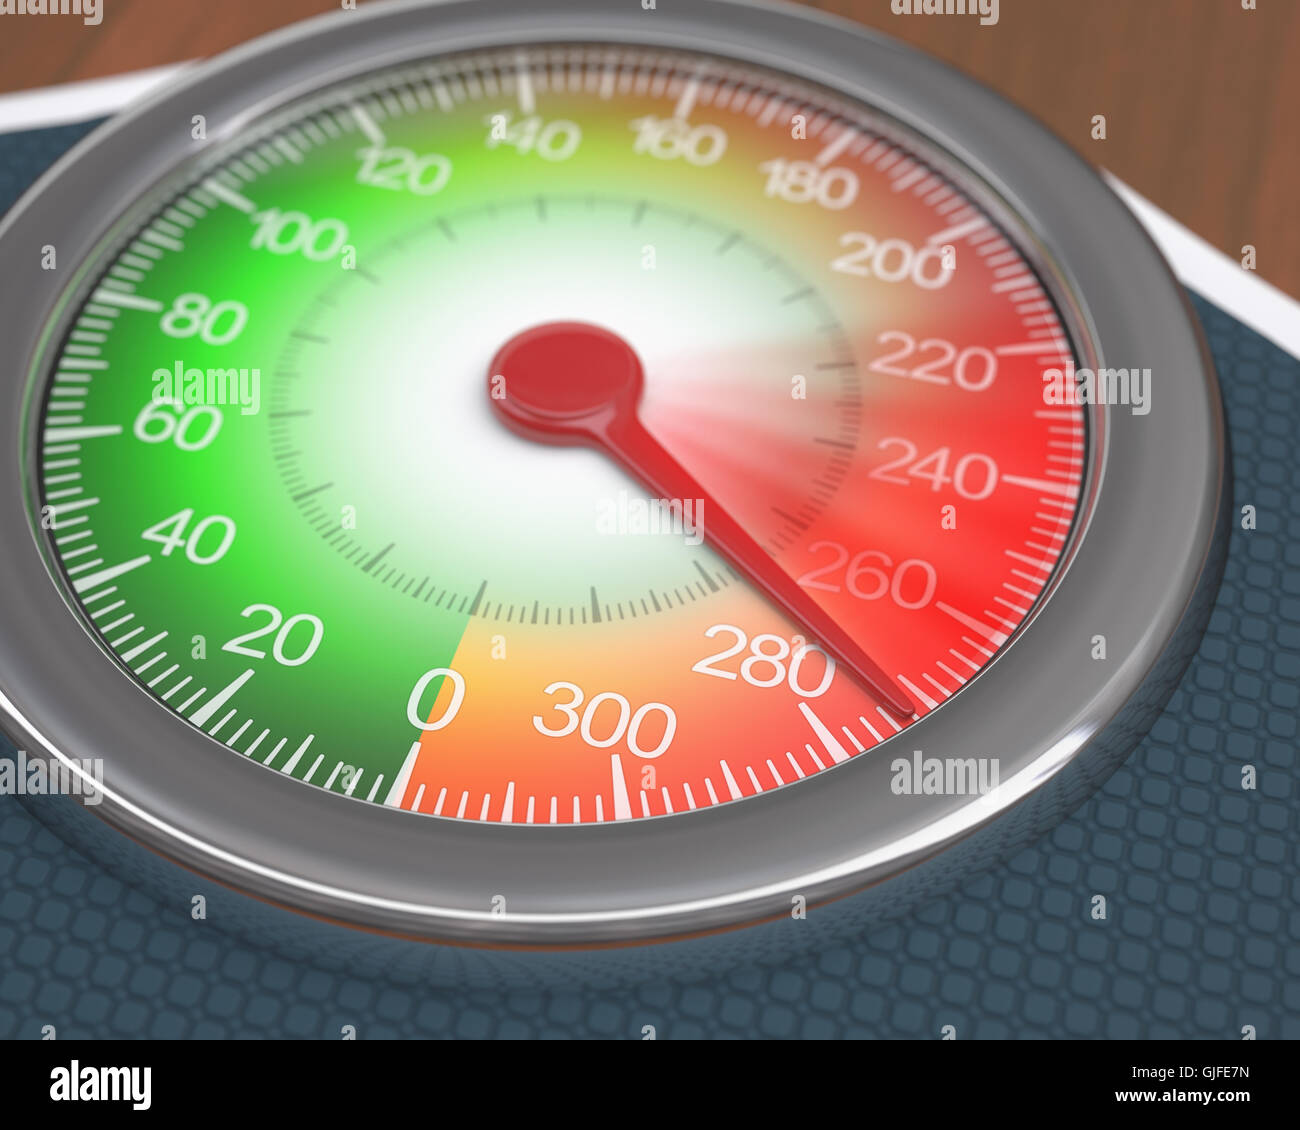 Analogue scale showing the movement on weight gain. - Stock Image